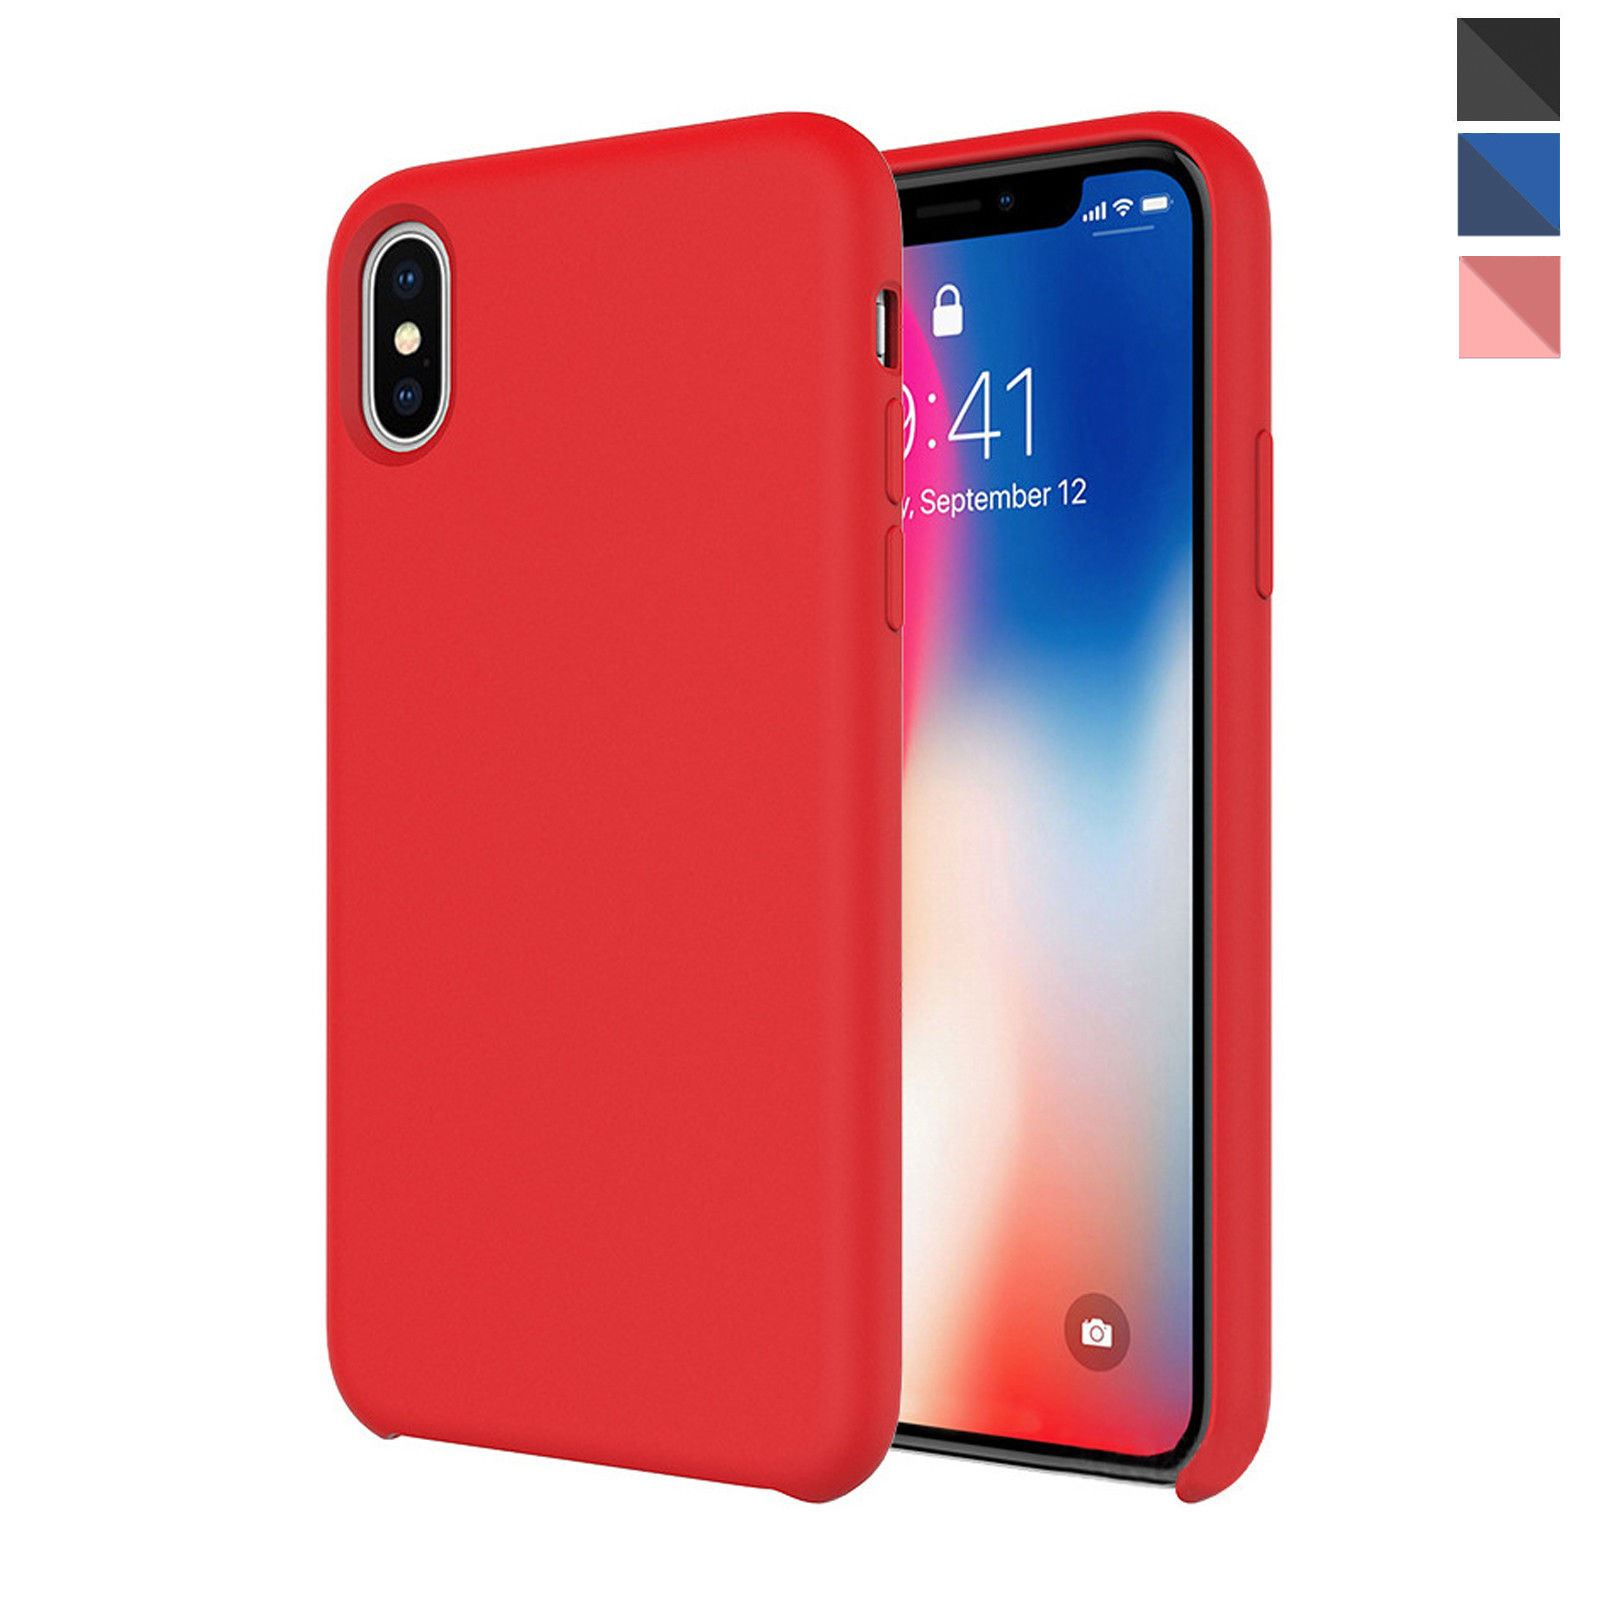 Details about Genuine Silicone Soft Liquid Luxury Case Cover For Apple  iPhone X 8 7 6s Plus 6 56c5f54bdf59f